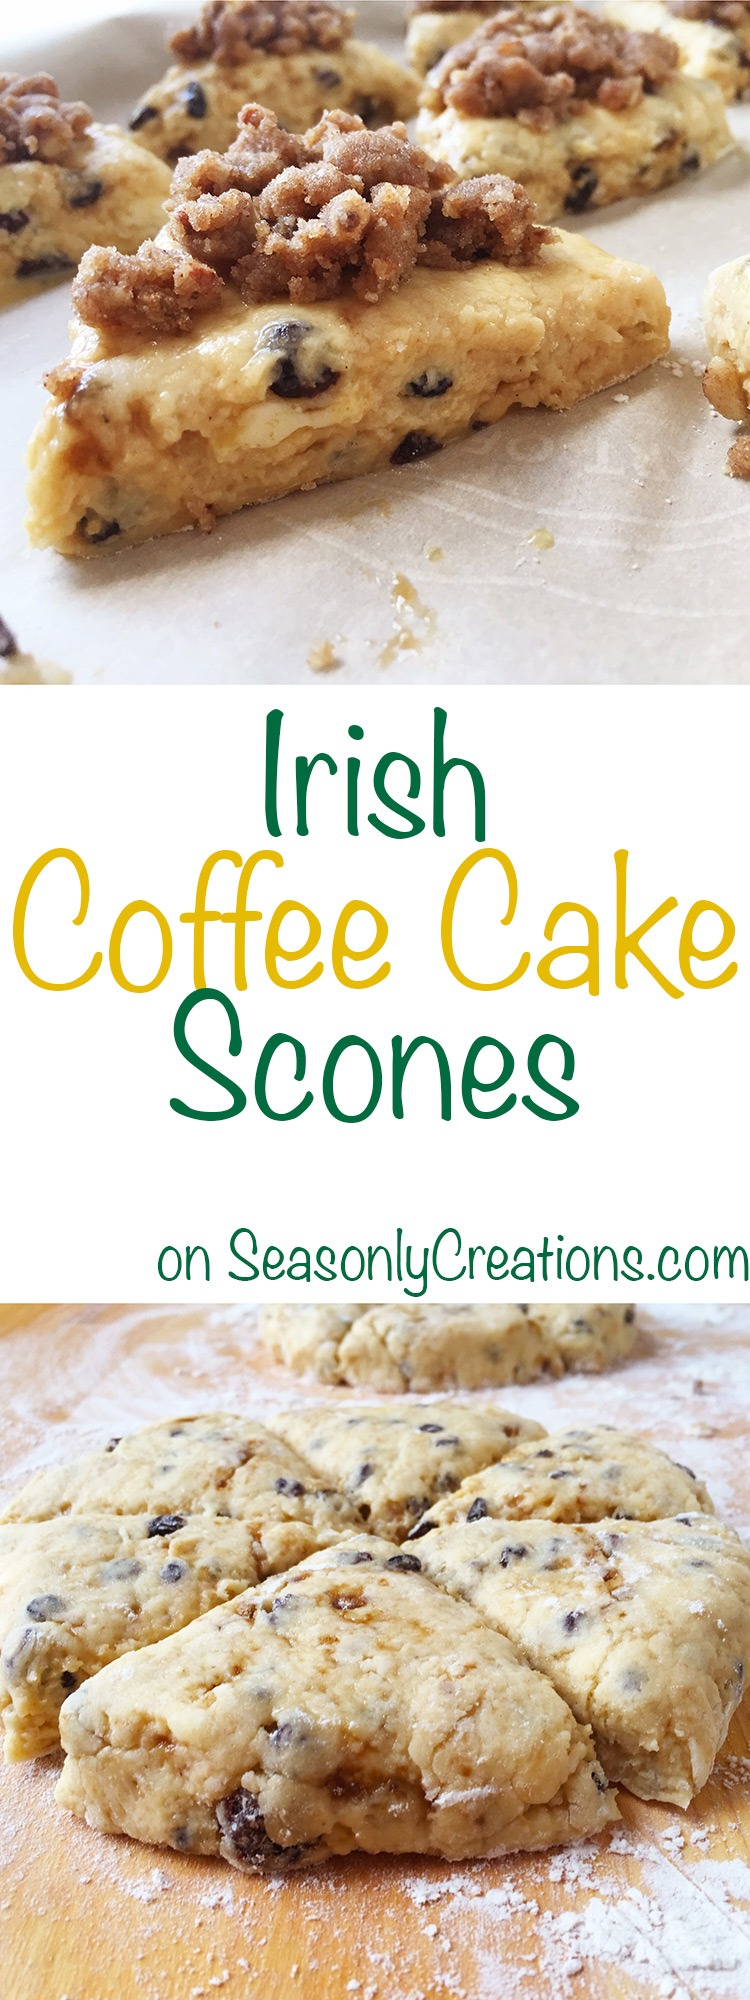 Irish Coffee Cake Scone recipe, a great option for St. Patricks Day or anytime you need a sweet tooth fix! PLUS, there's a FREE Printable Recipe and Resource List for your scone making project. Click through for the full recipe and for your free printable! | SeasonlyCreations... | @SeasonlyBlog